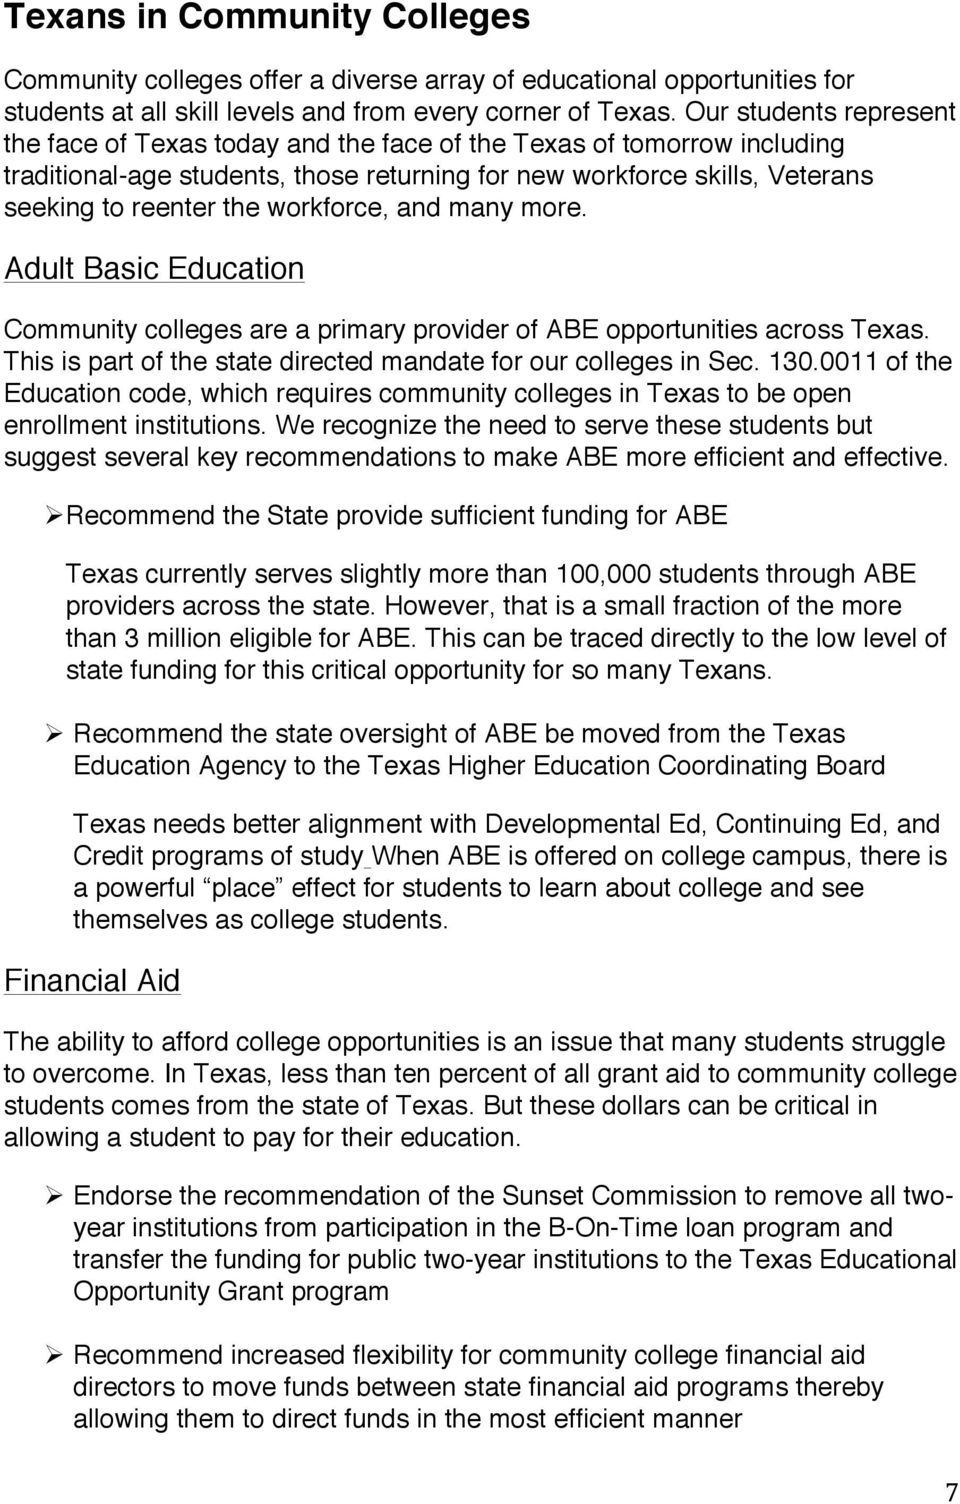 workforce, and many more. Adult Basic Education Community colleges are a primary provider of ABE opportunities across Texas. This is part of the state directed mandate for our colleges in Sec. 130.